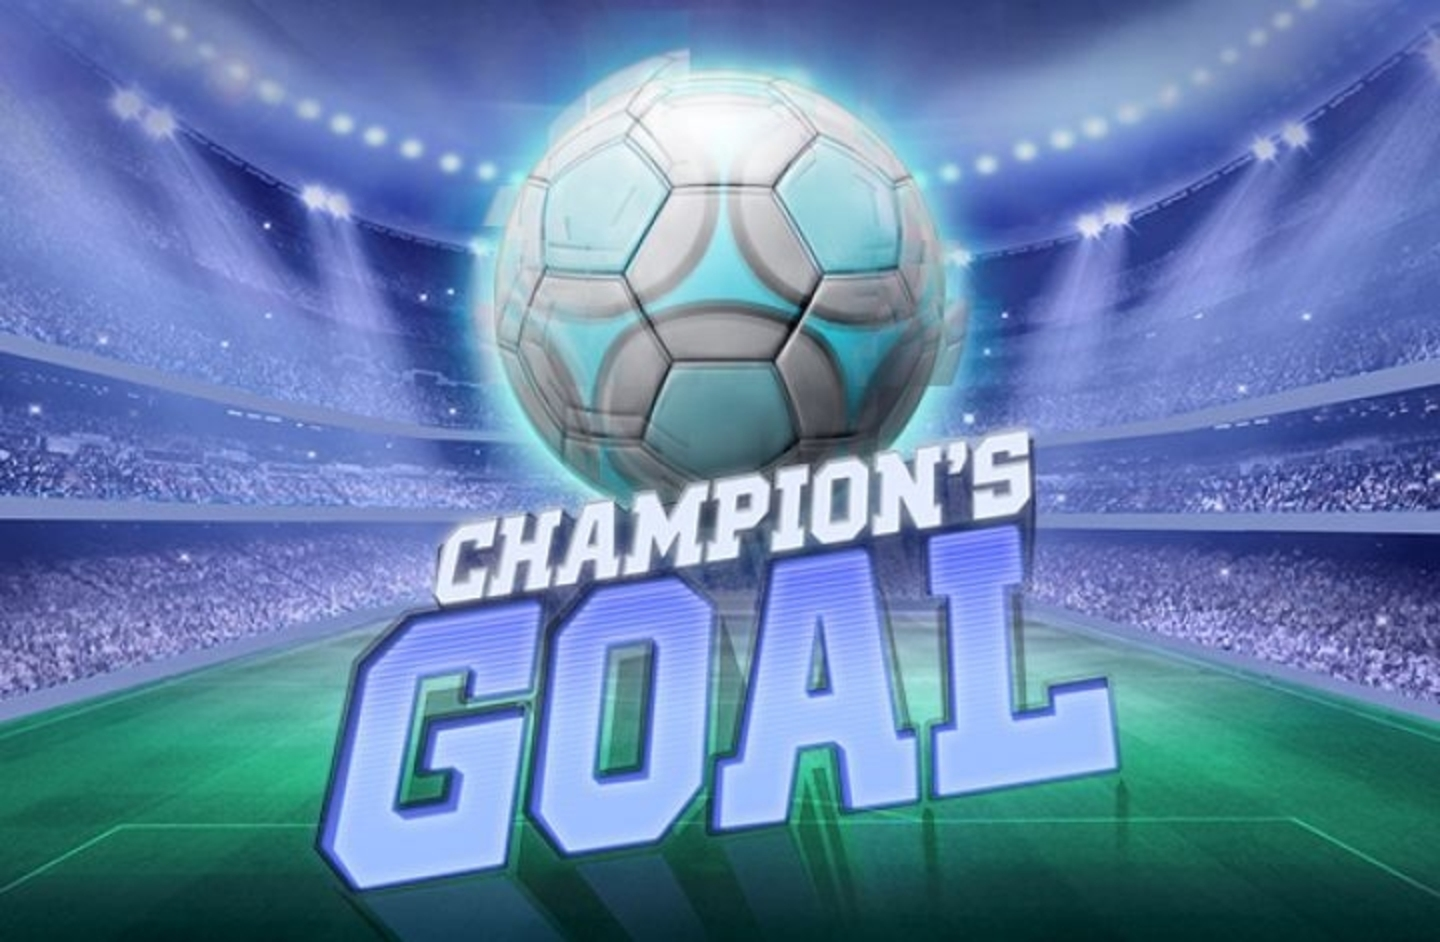 Se Champion's Goal Online Slot Demo Game, ELK Studios